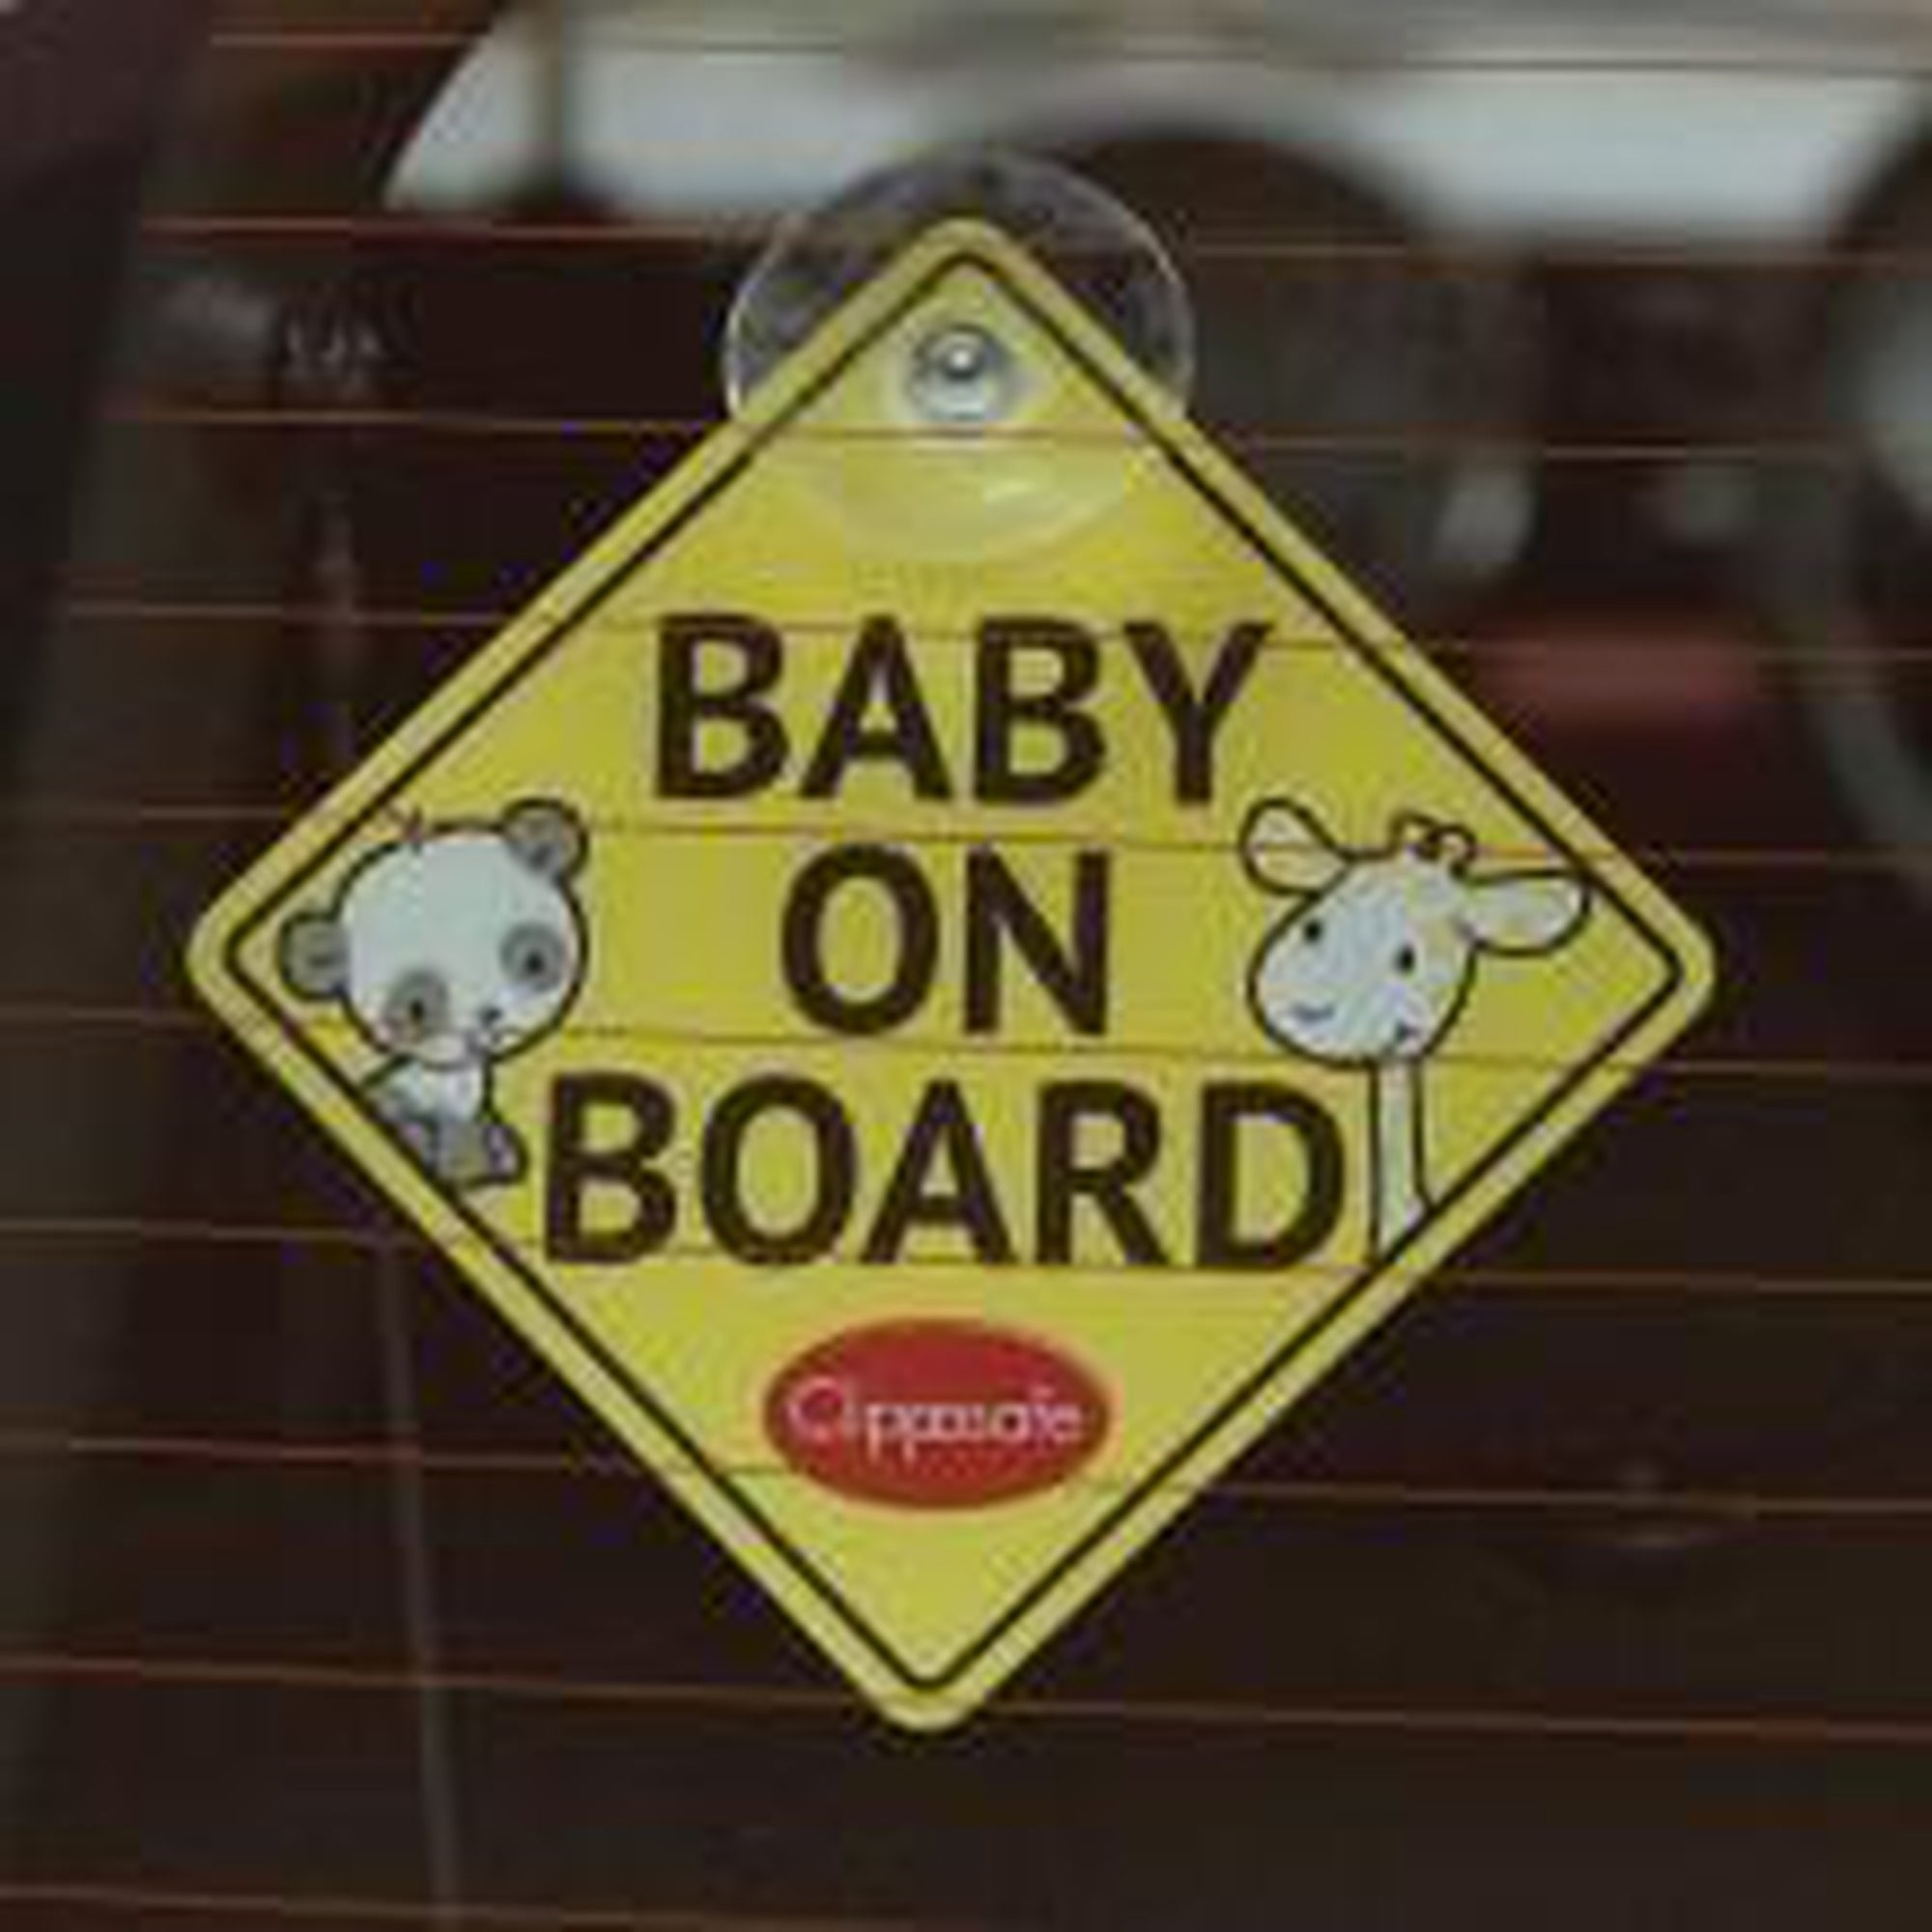 Clippasafe Baby On Board / Child On Board Sign - YELLOW-Car Safety Accessories-Mother and Baby Shop Kenya's #1 Online Baby Shop